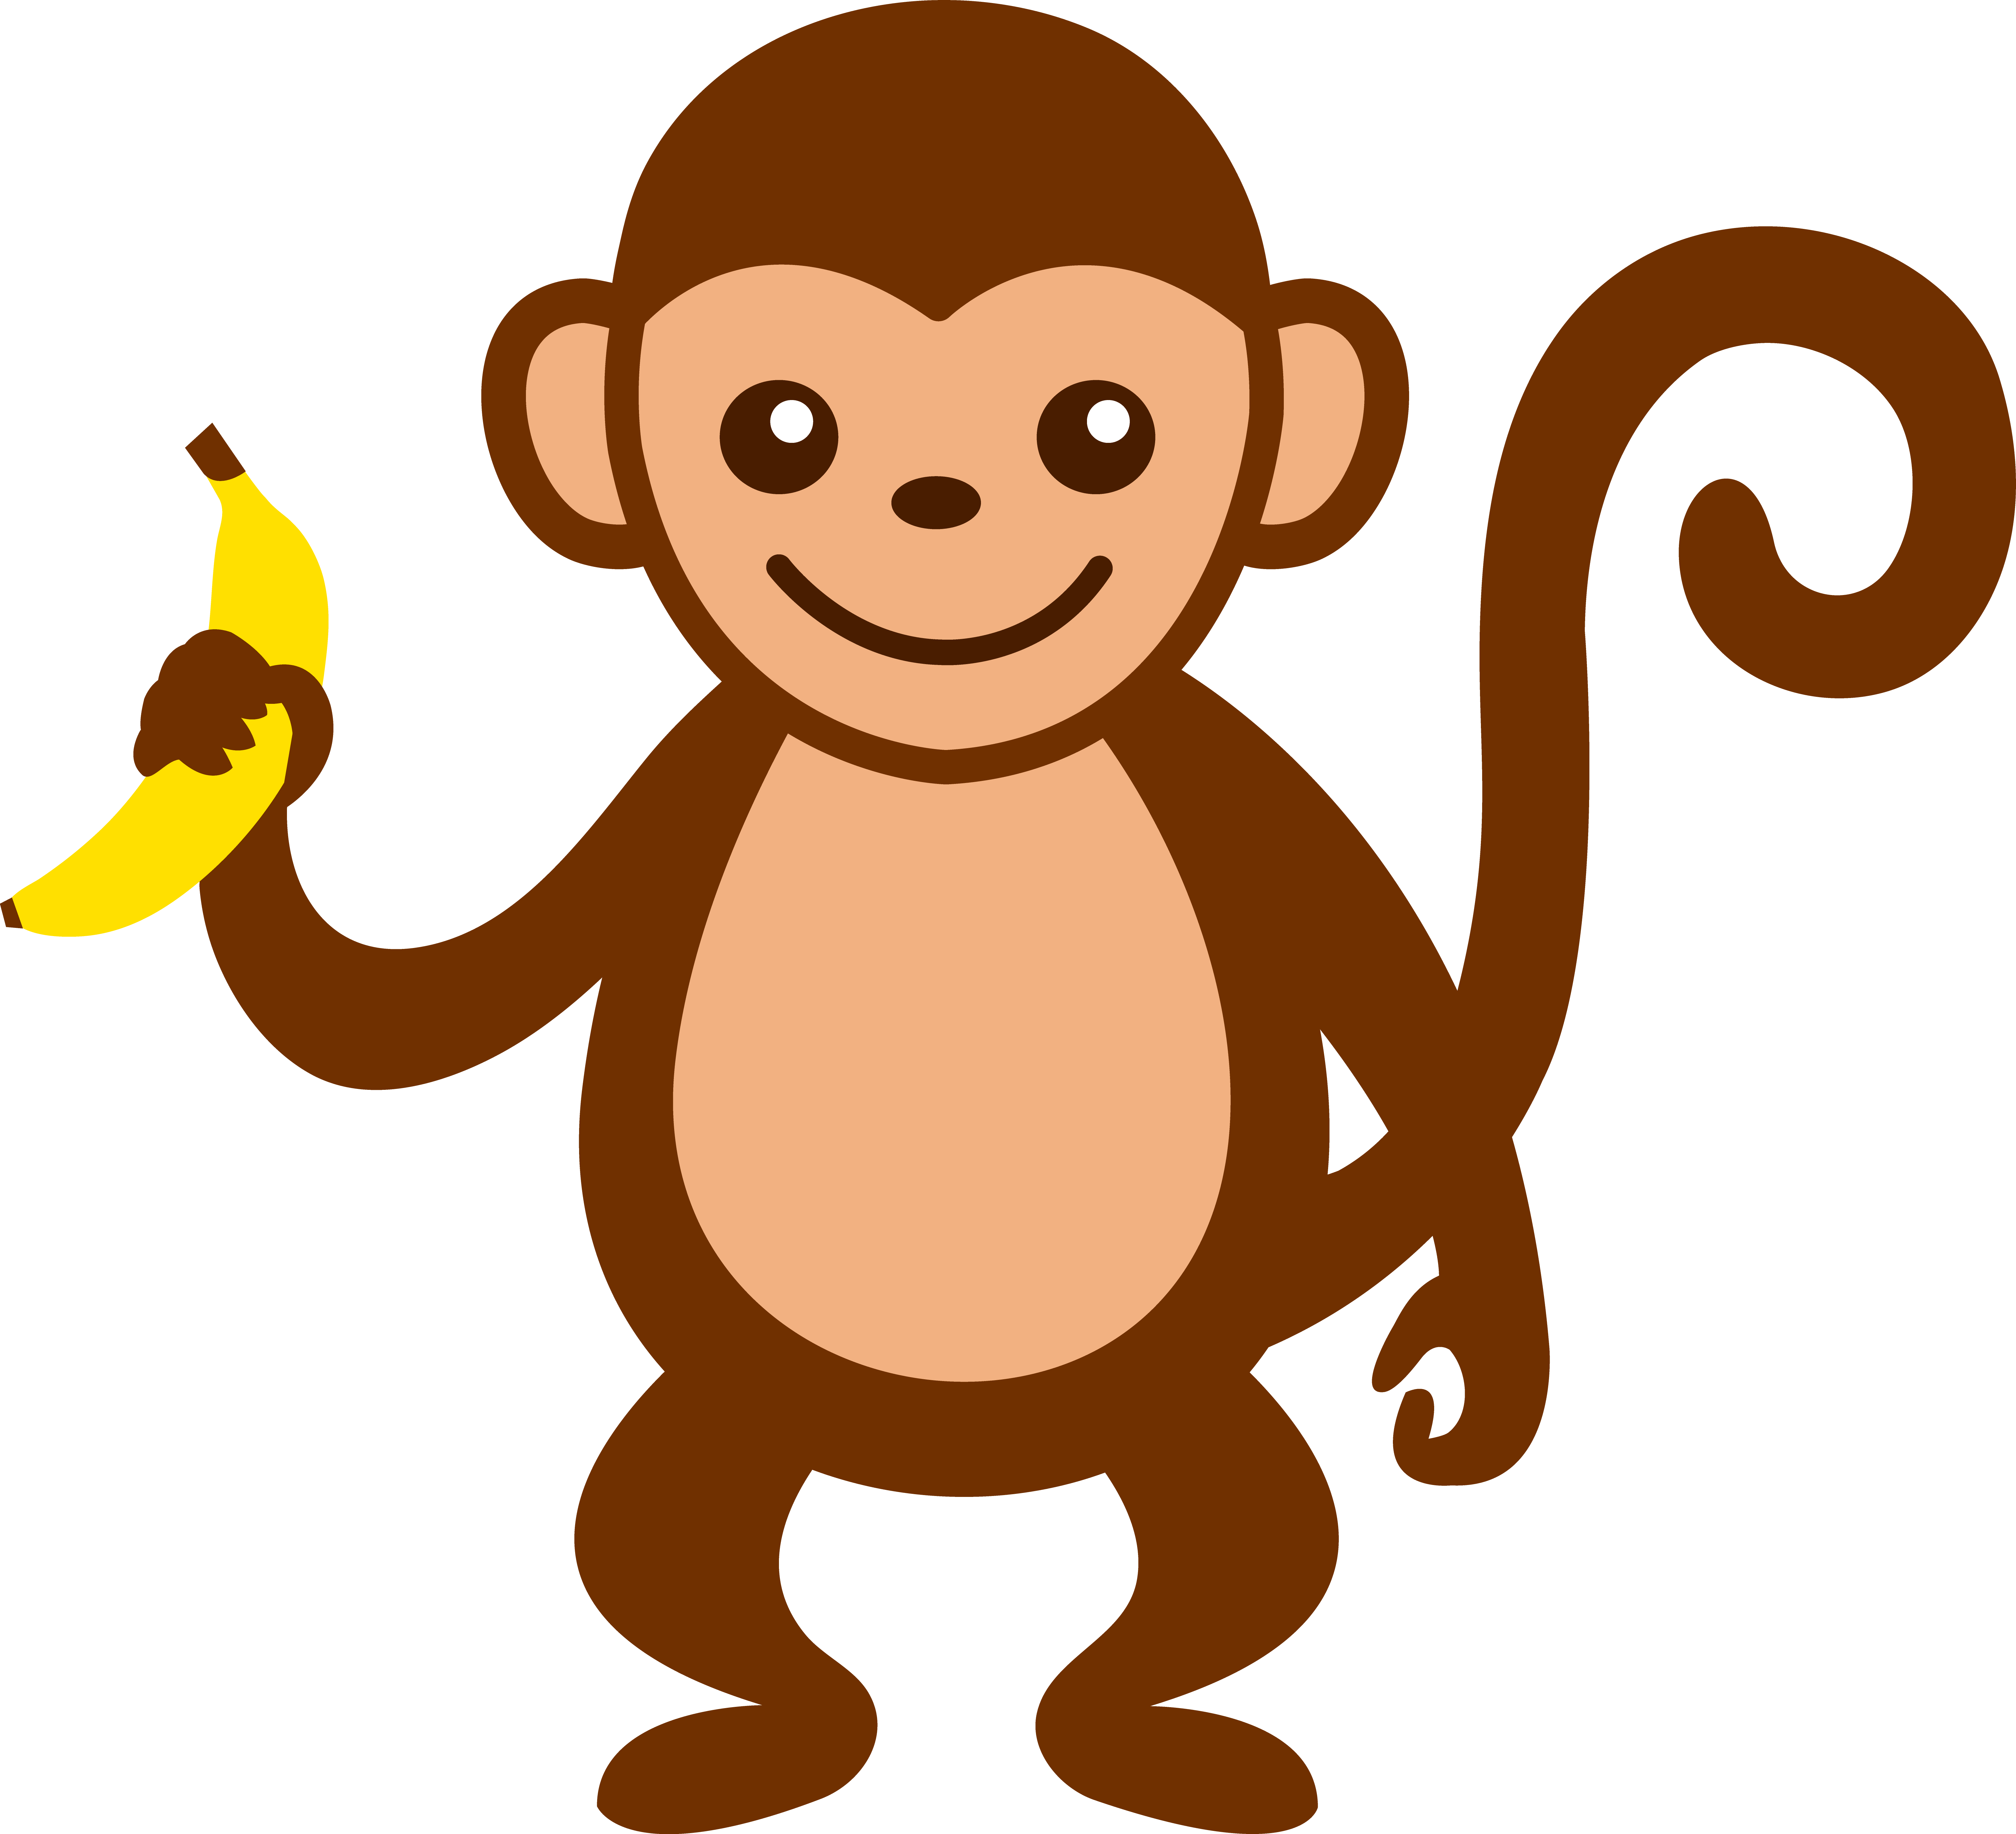 Picture Of Monkey With Banana - ClipArt Best